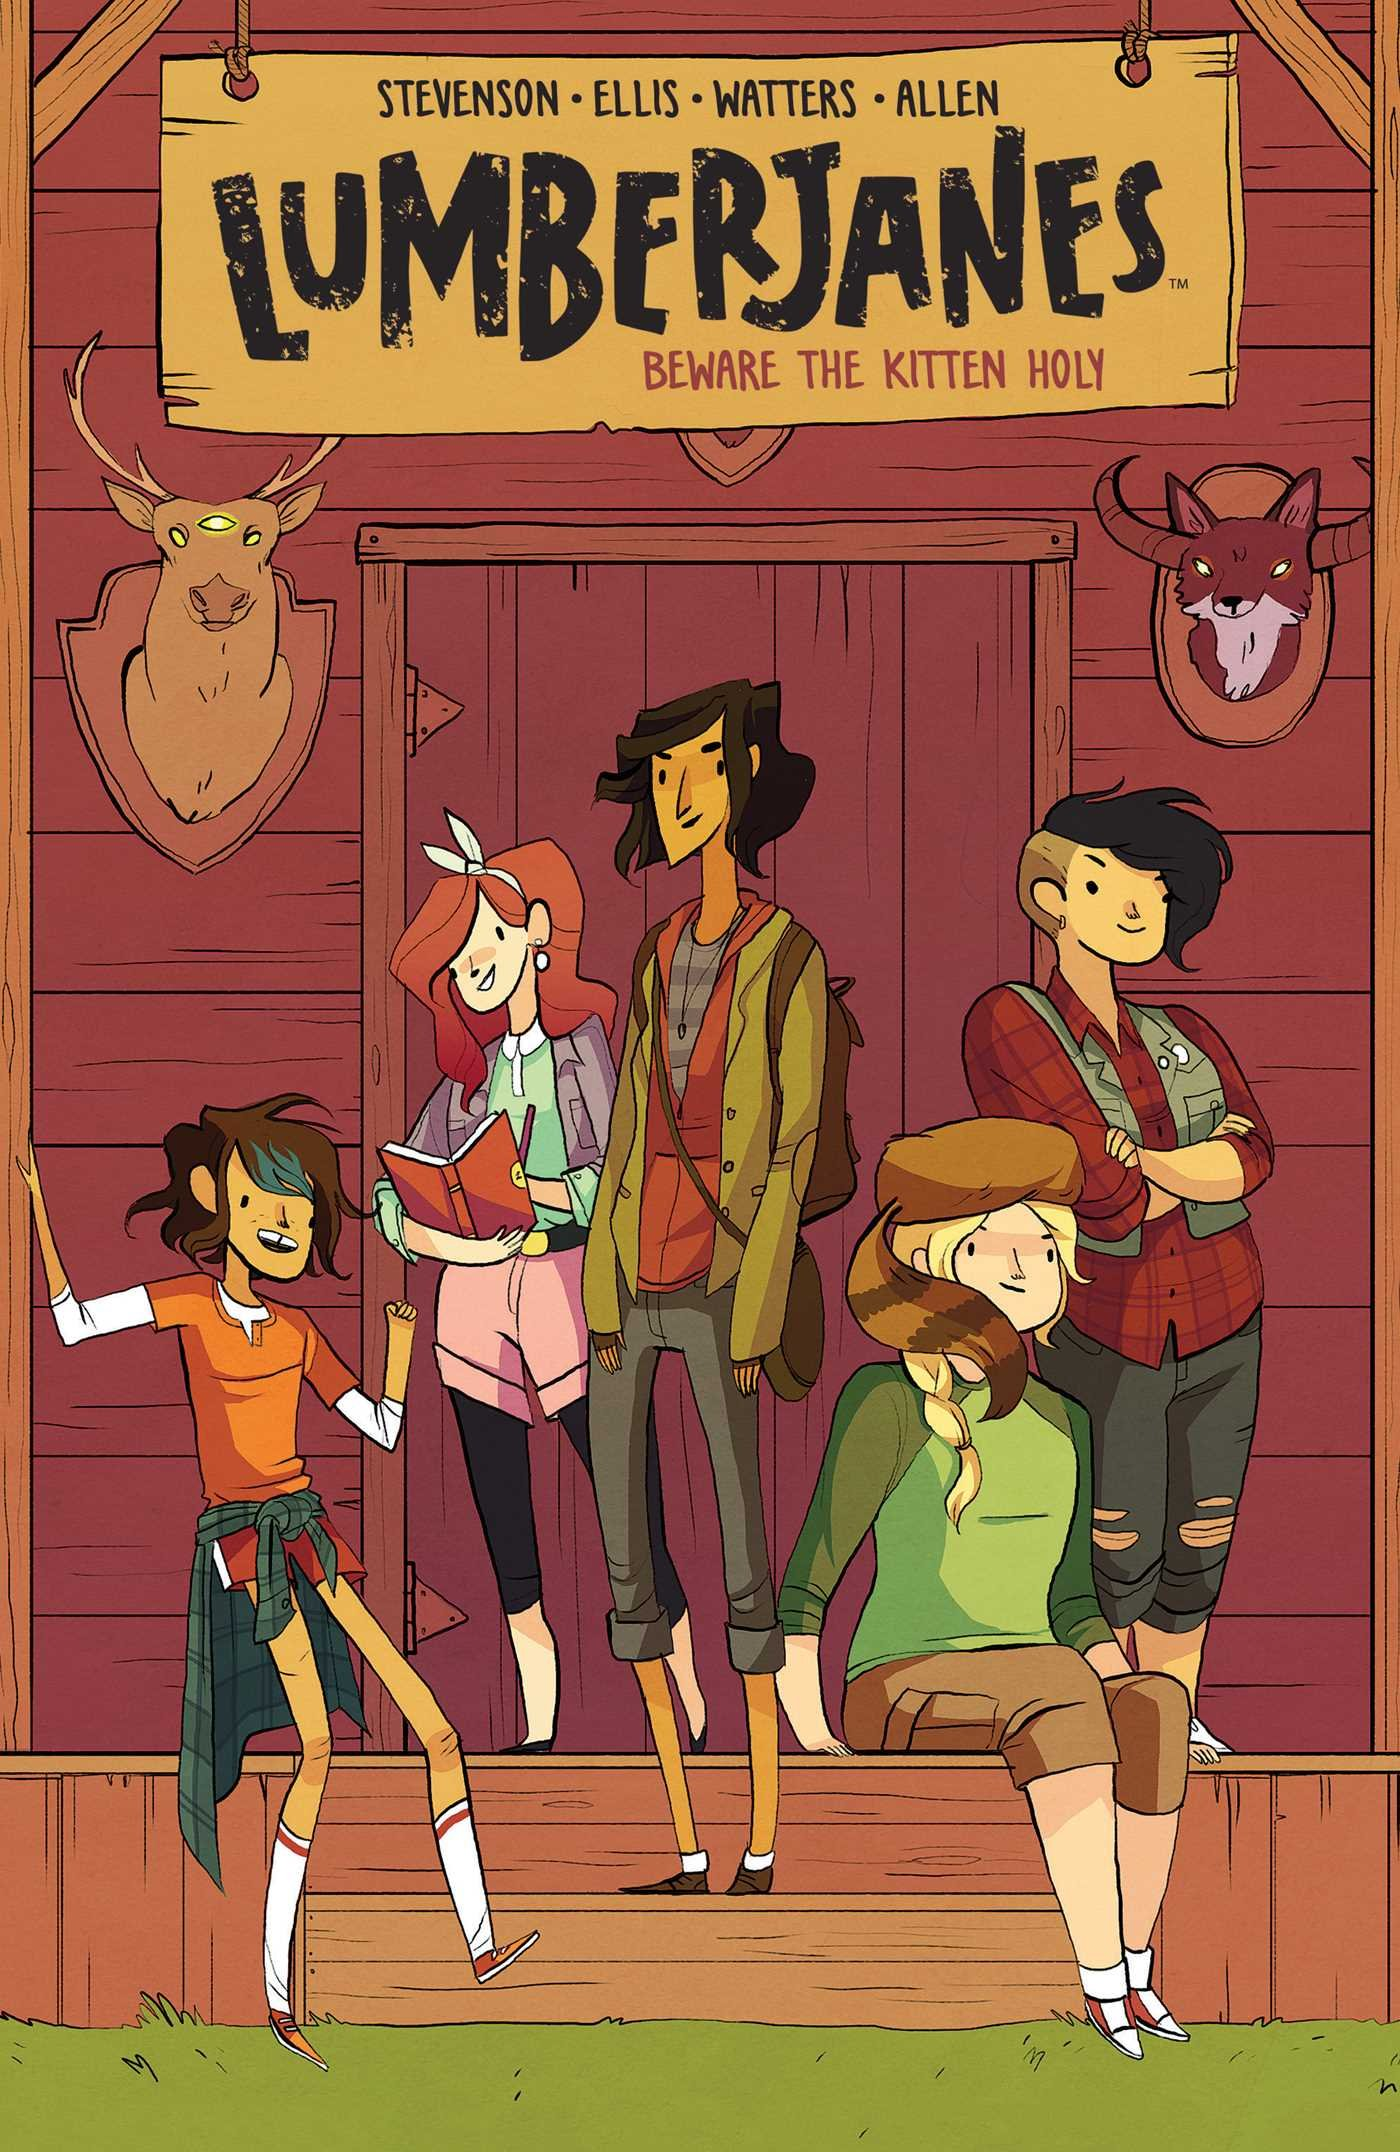 Cover of Lumberjanes, volume one, Beware the Kitten Holy.  Created by Noelle Stevenson, Grace Ellis, Shannon Watters, and Brooklyn Allen.  The background is the red front of a cabin with a deer head on one side of the door and an antlered fox head on the other side.    On the steps are five girls.  One has short, wavy brown hair with a blue streak, one has long red hair tied with a white ribbon, one has short wavy dark hair with no streak, one has a long blond braid and a raccoon-shaped hat, and one has short black hair that's buzzed on one side.